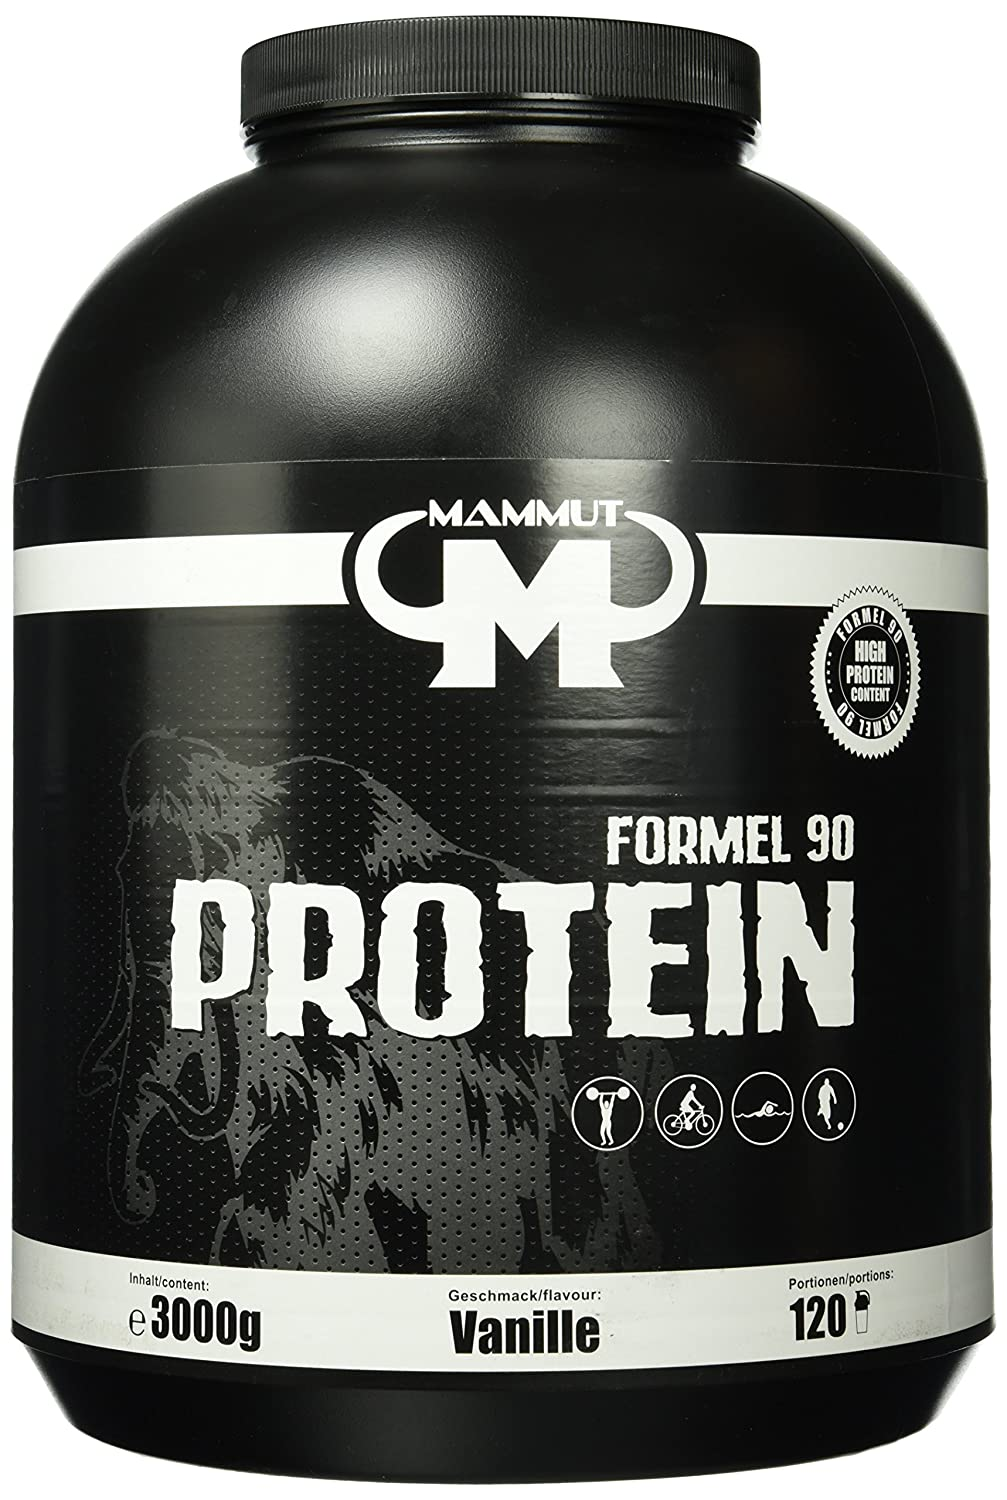 coupon codes multiple colors attractive price Mammut Formel 90 Protein, Vanille, 3000 g Dose